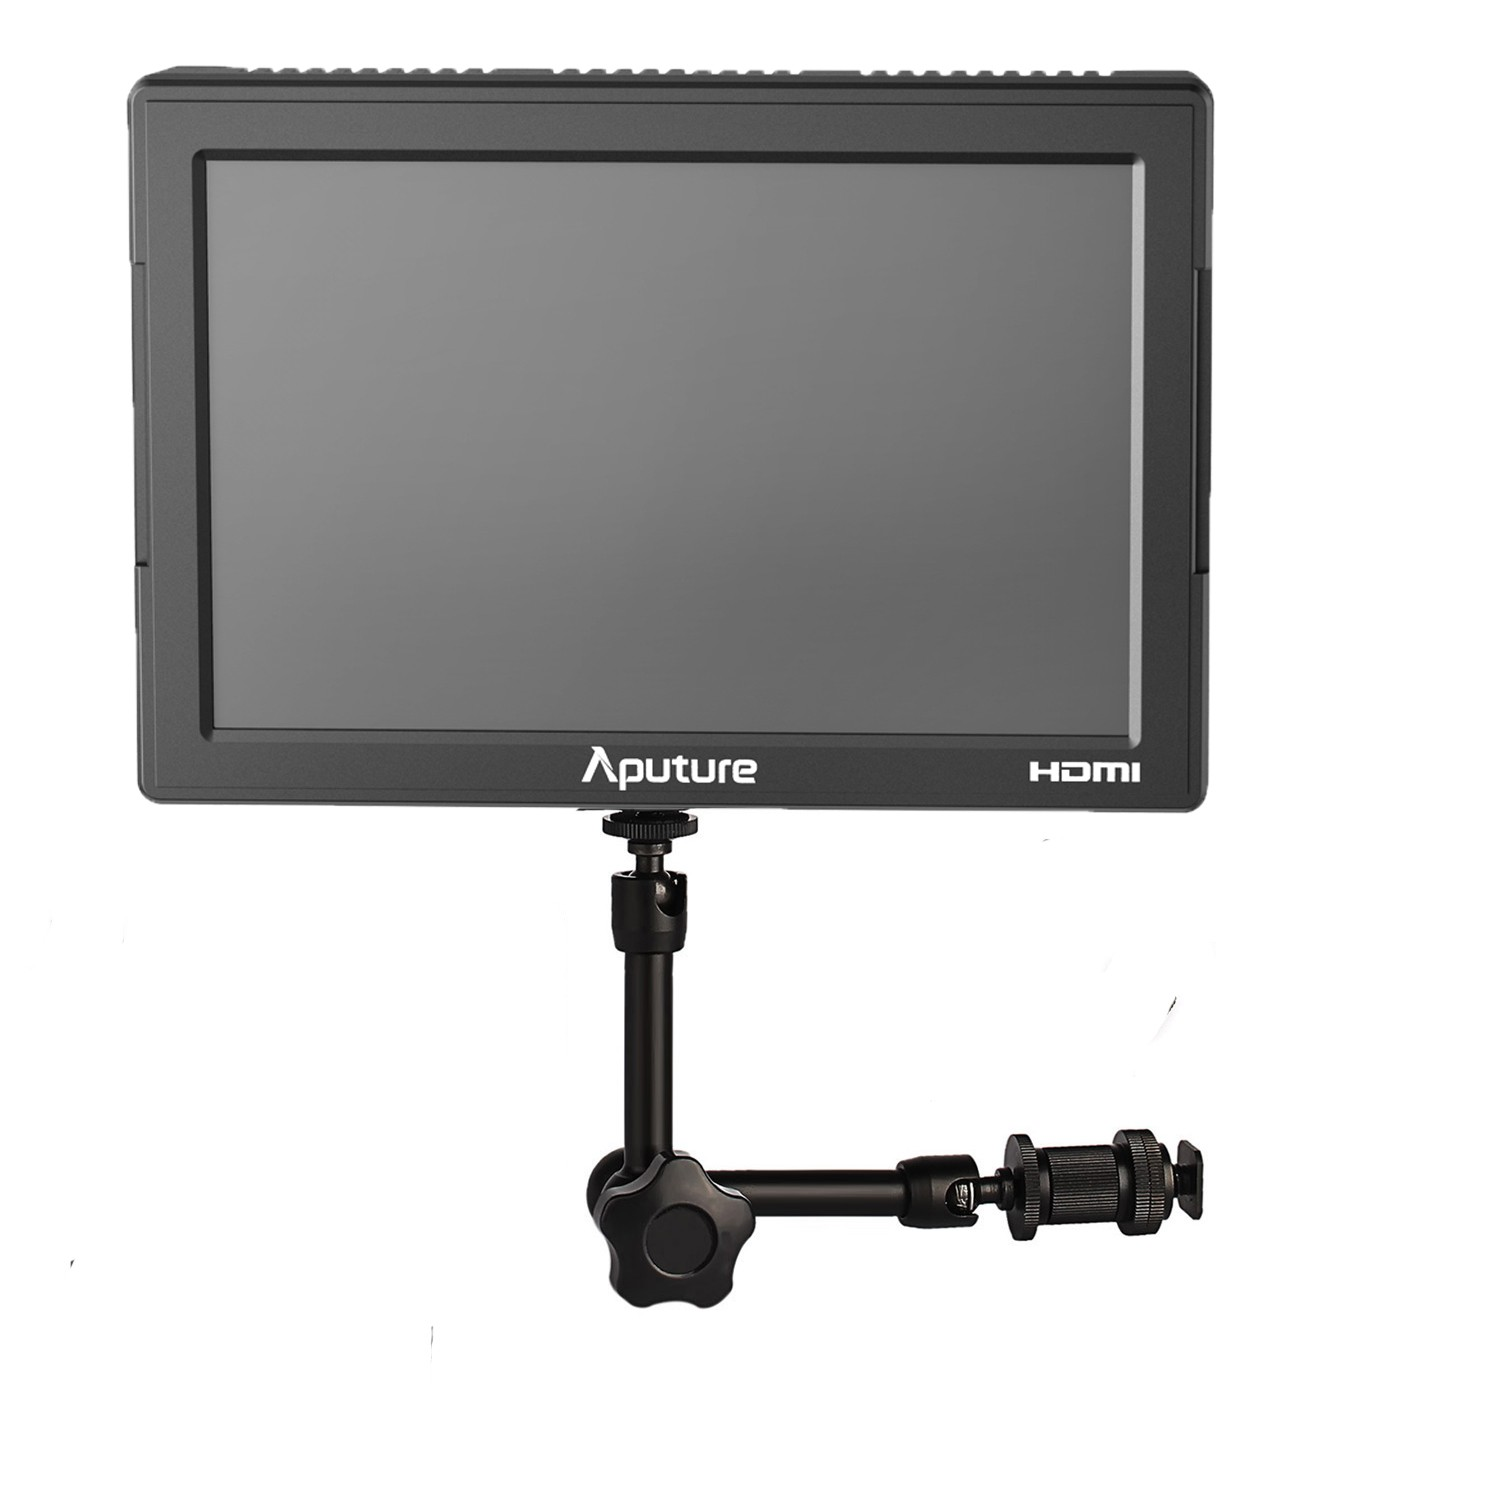 Aputure VS-5 HD-SDI HDMI 1920*1200 Video Monitor + 7 inch Magic Arm for Sony Canon Nikon DSLR Camera aputure vs 1 v screen digital video monitor